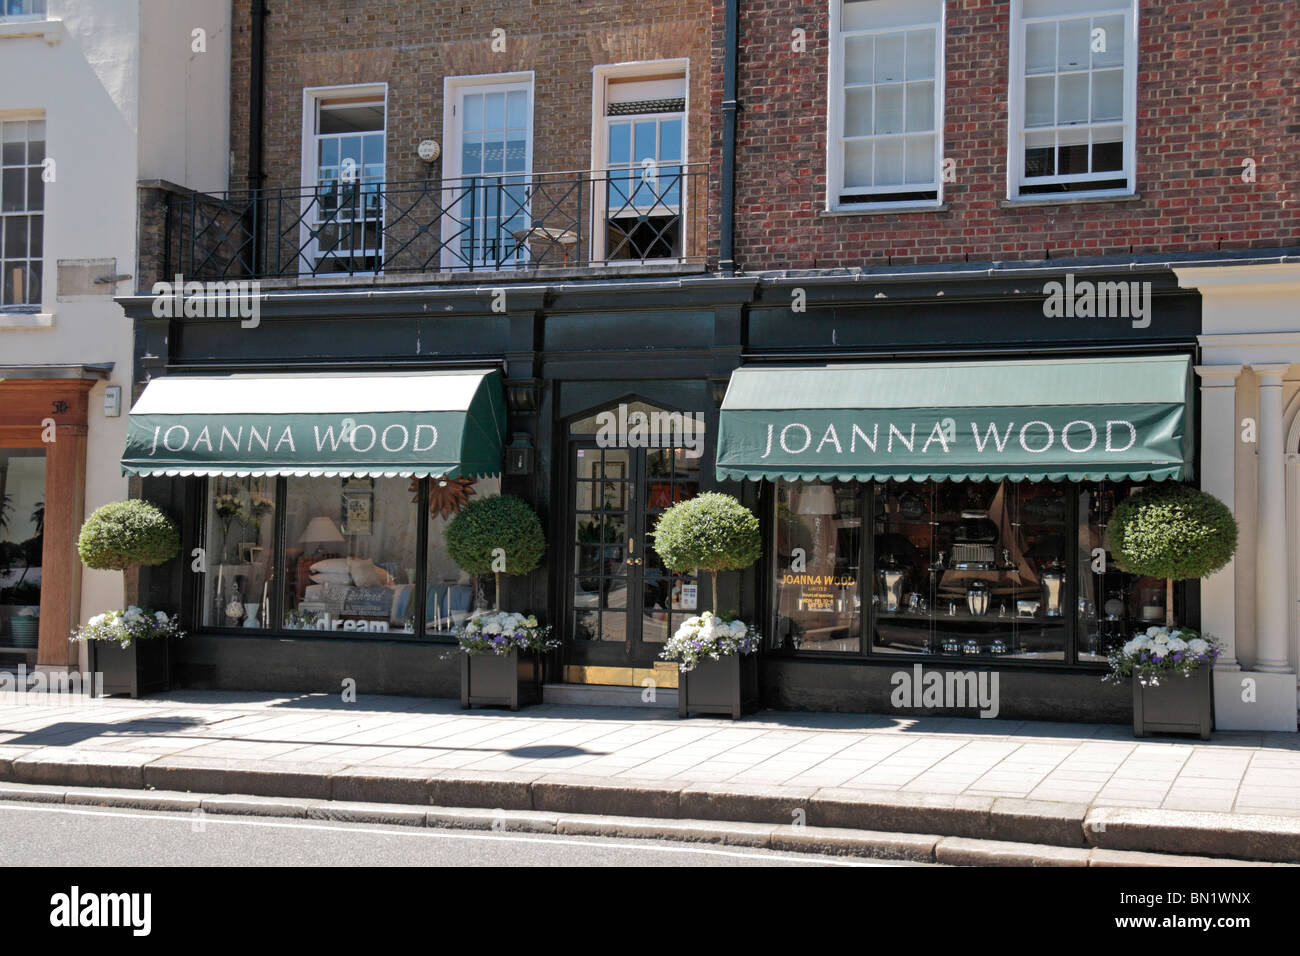 The Shop Front Of The Joanna Wood Interior Design Shop In